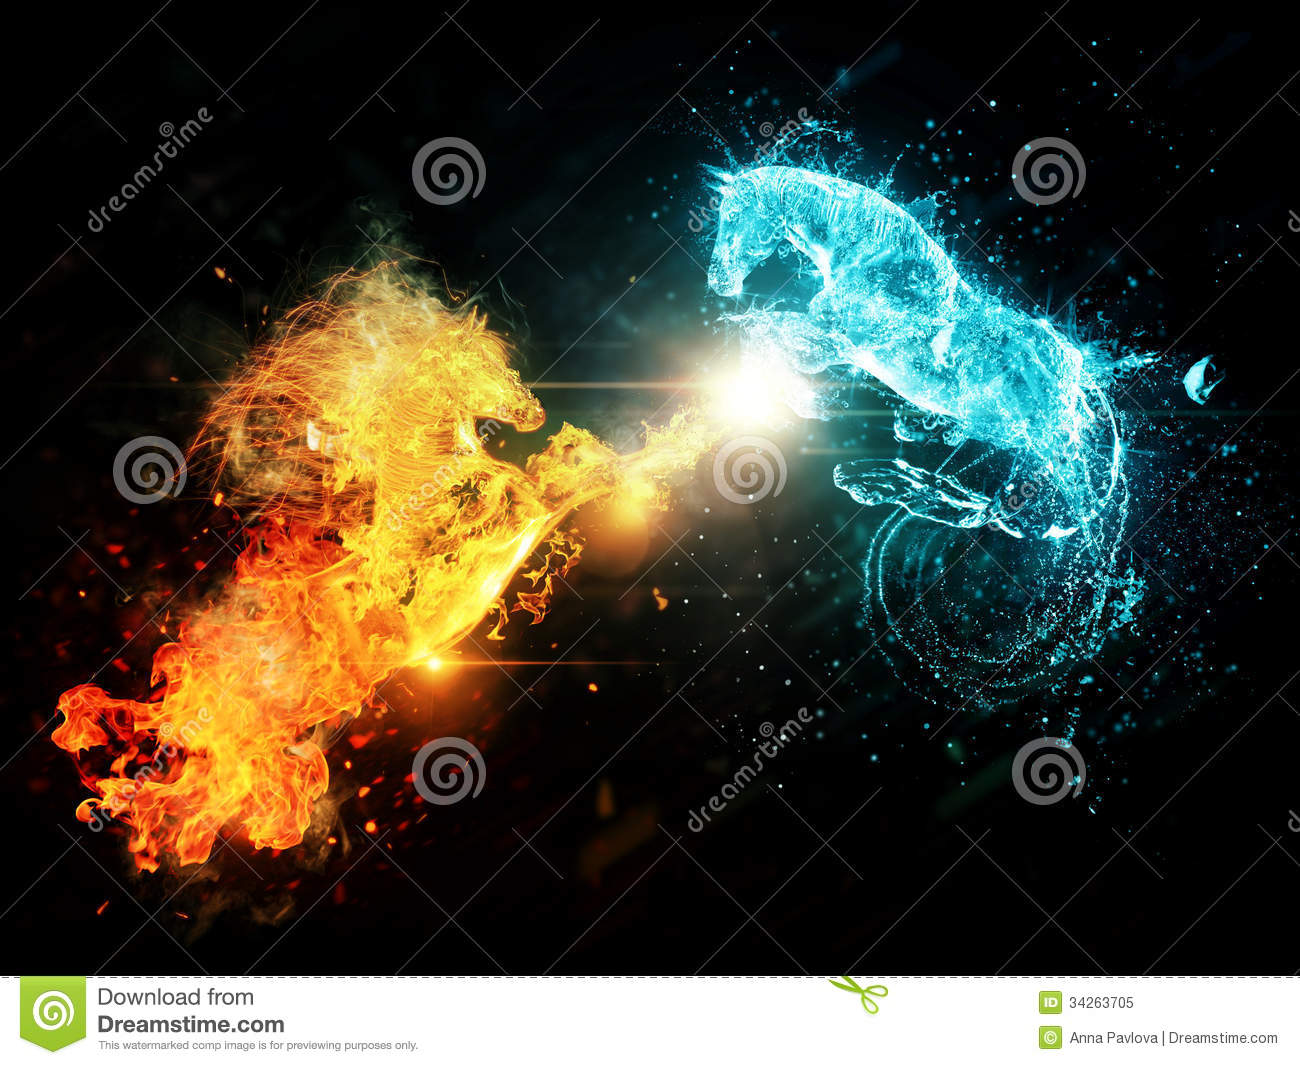 Water and fire horses stock illustration. Illustration of ...